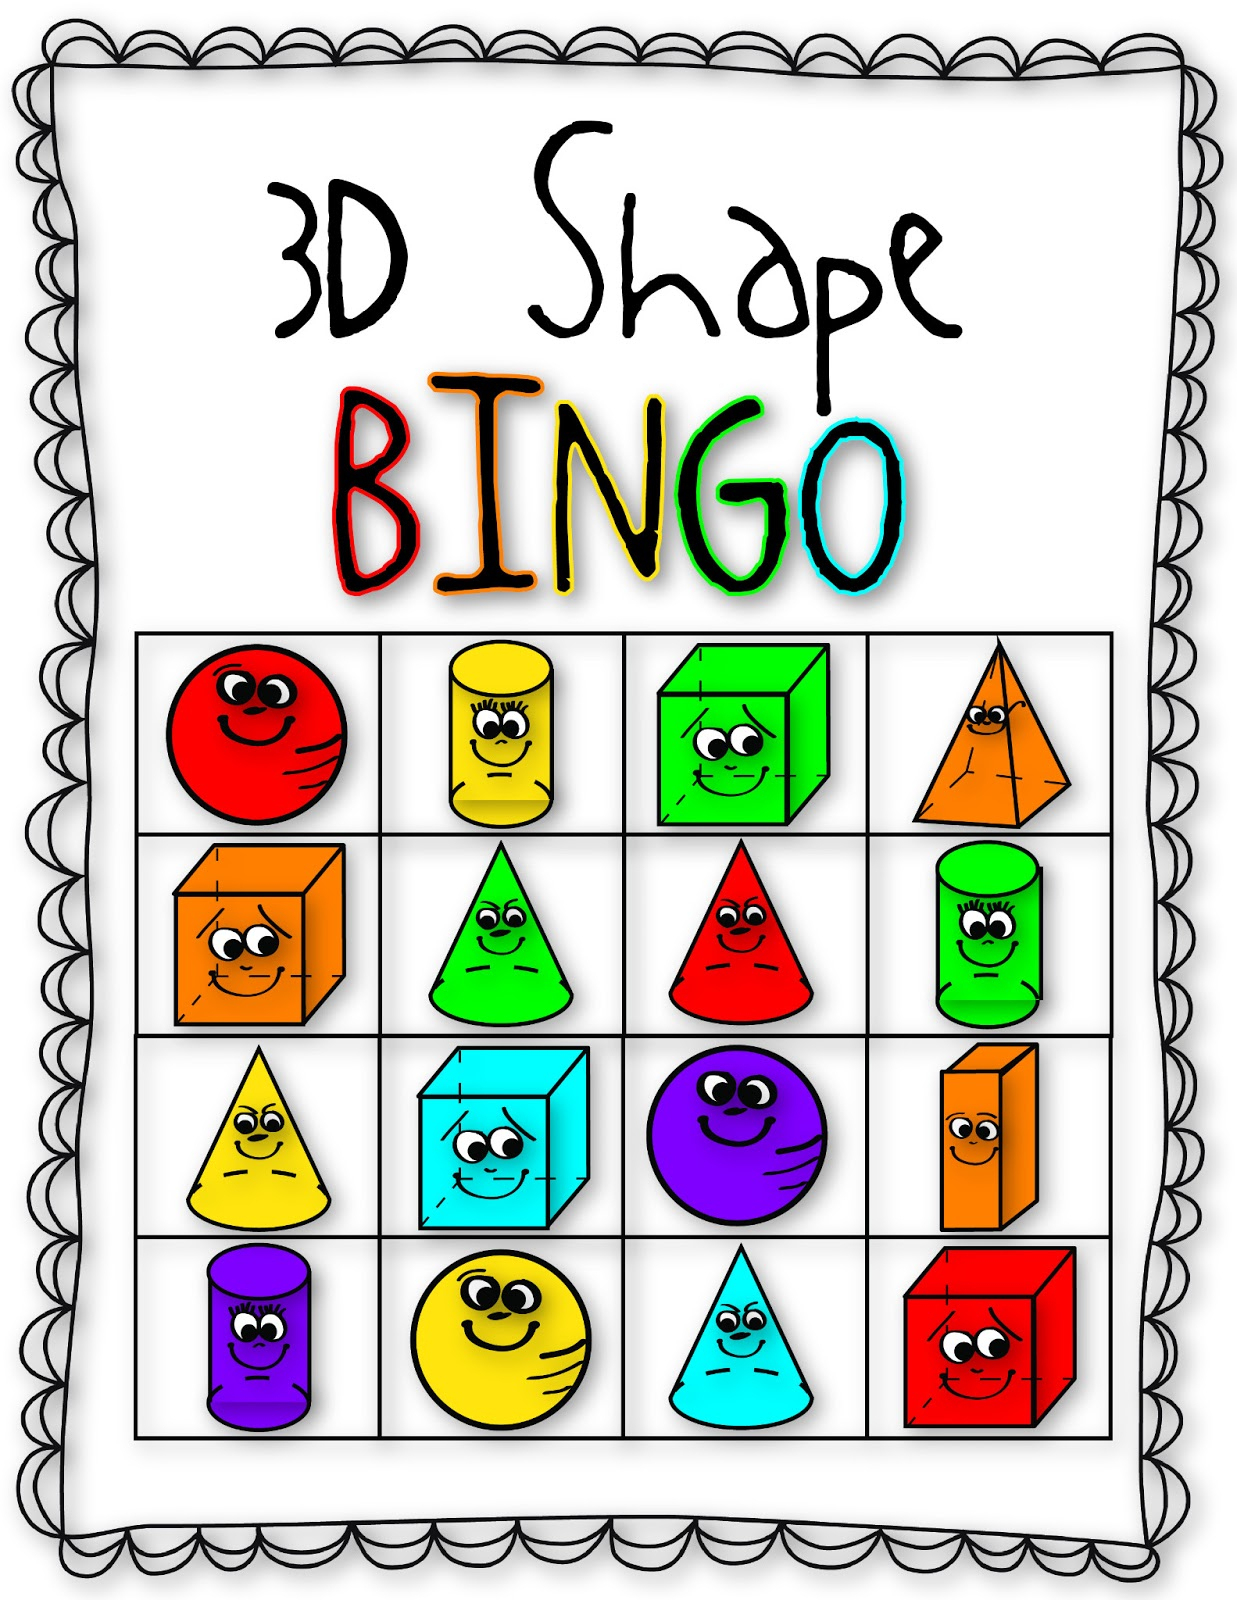 26 Images Of Shape Bingo Template | Bfegy - 3D Shape Bingo Free Printable